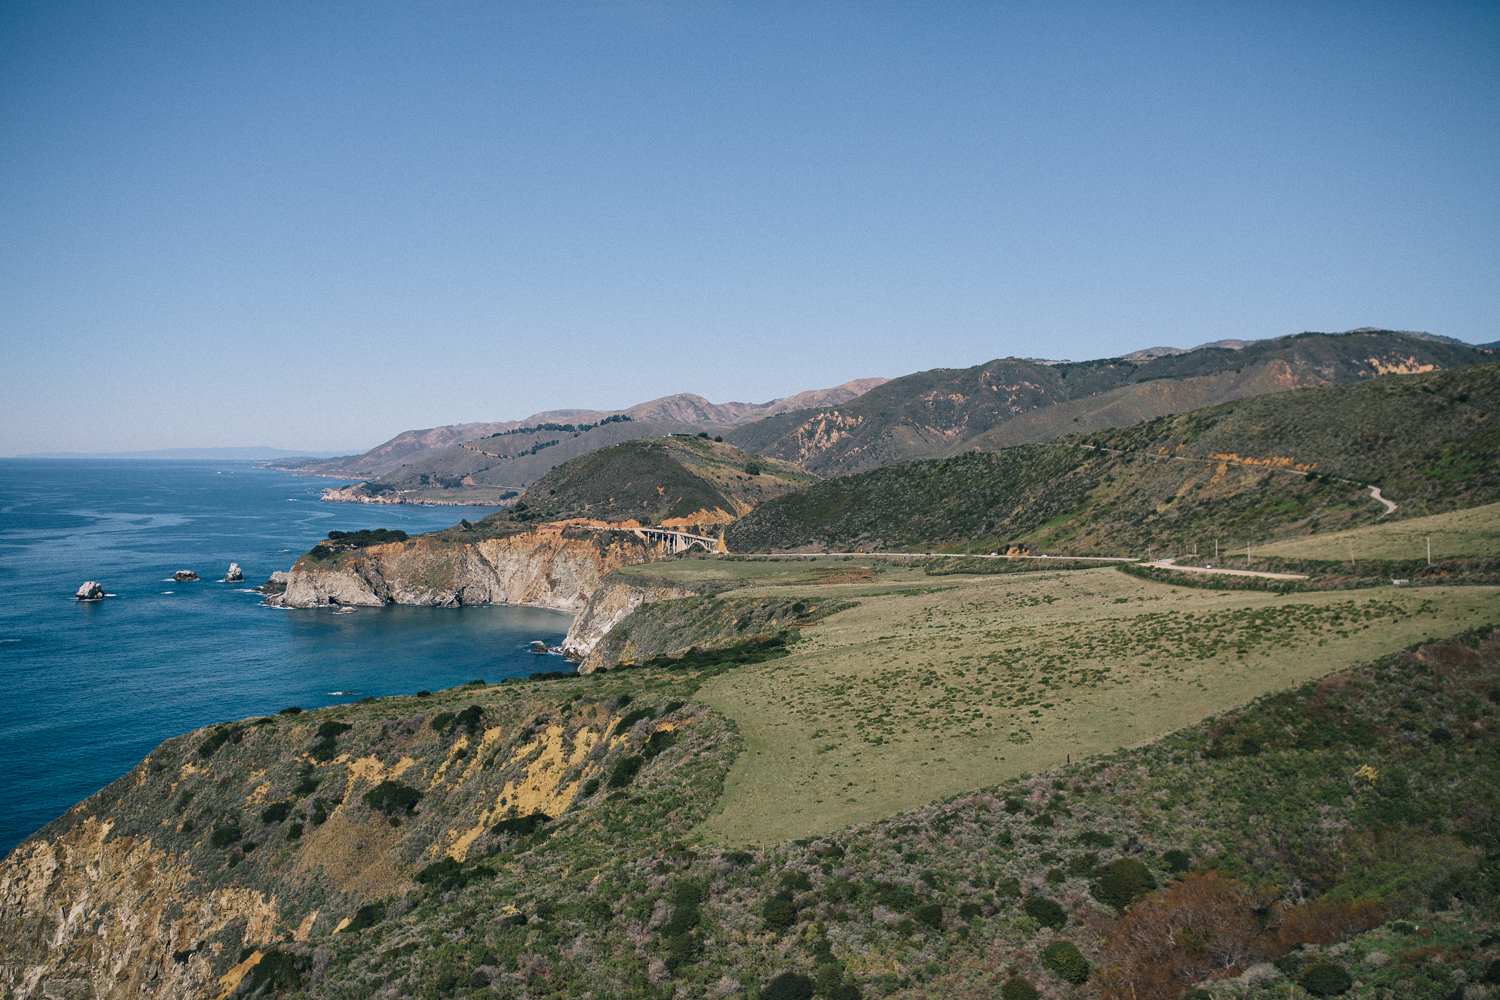 2018_03_ 05MC and Bethany Big Sur Edited For Web 0031.jpg